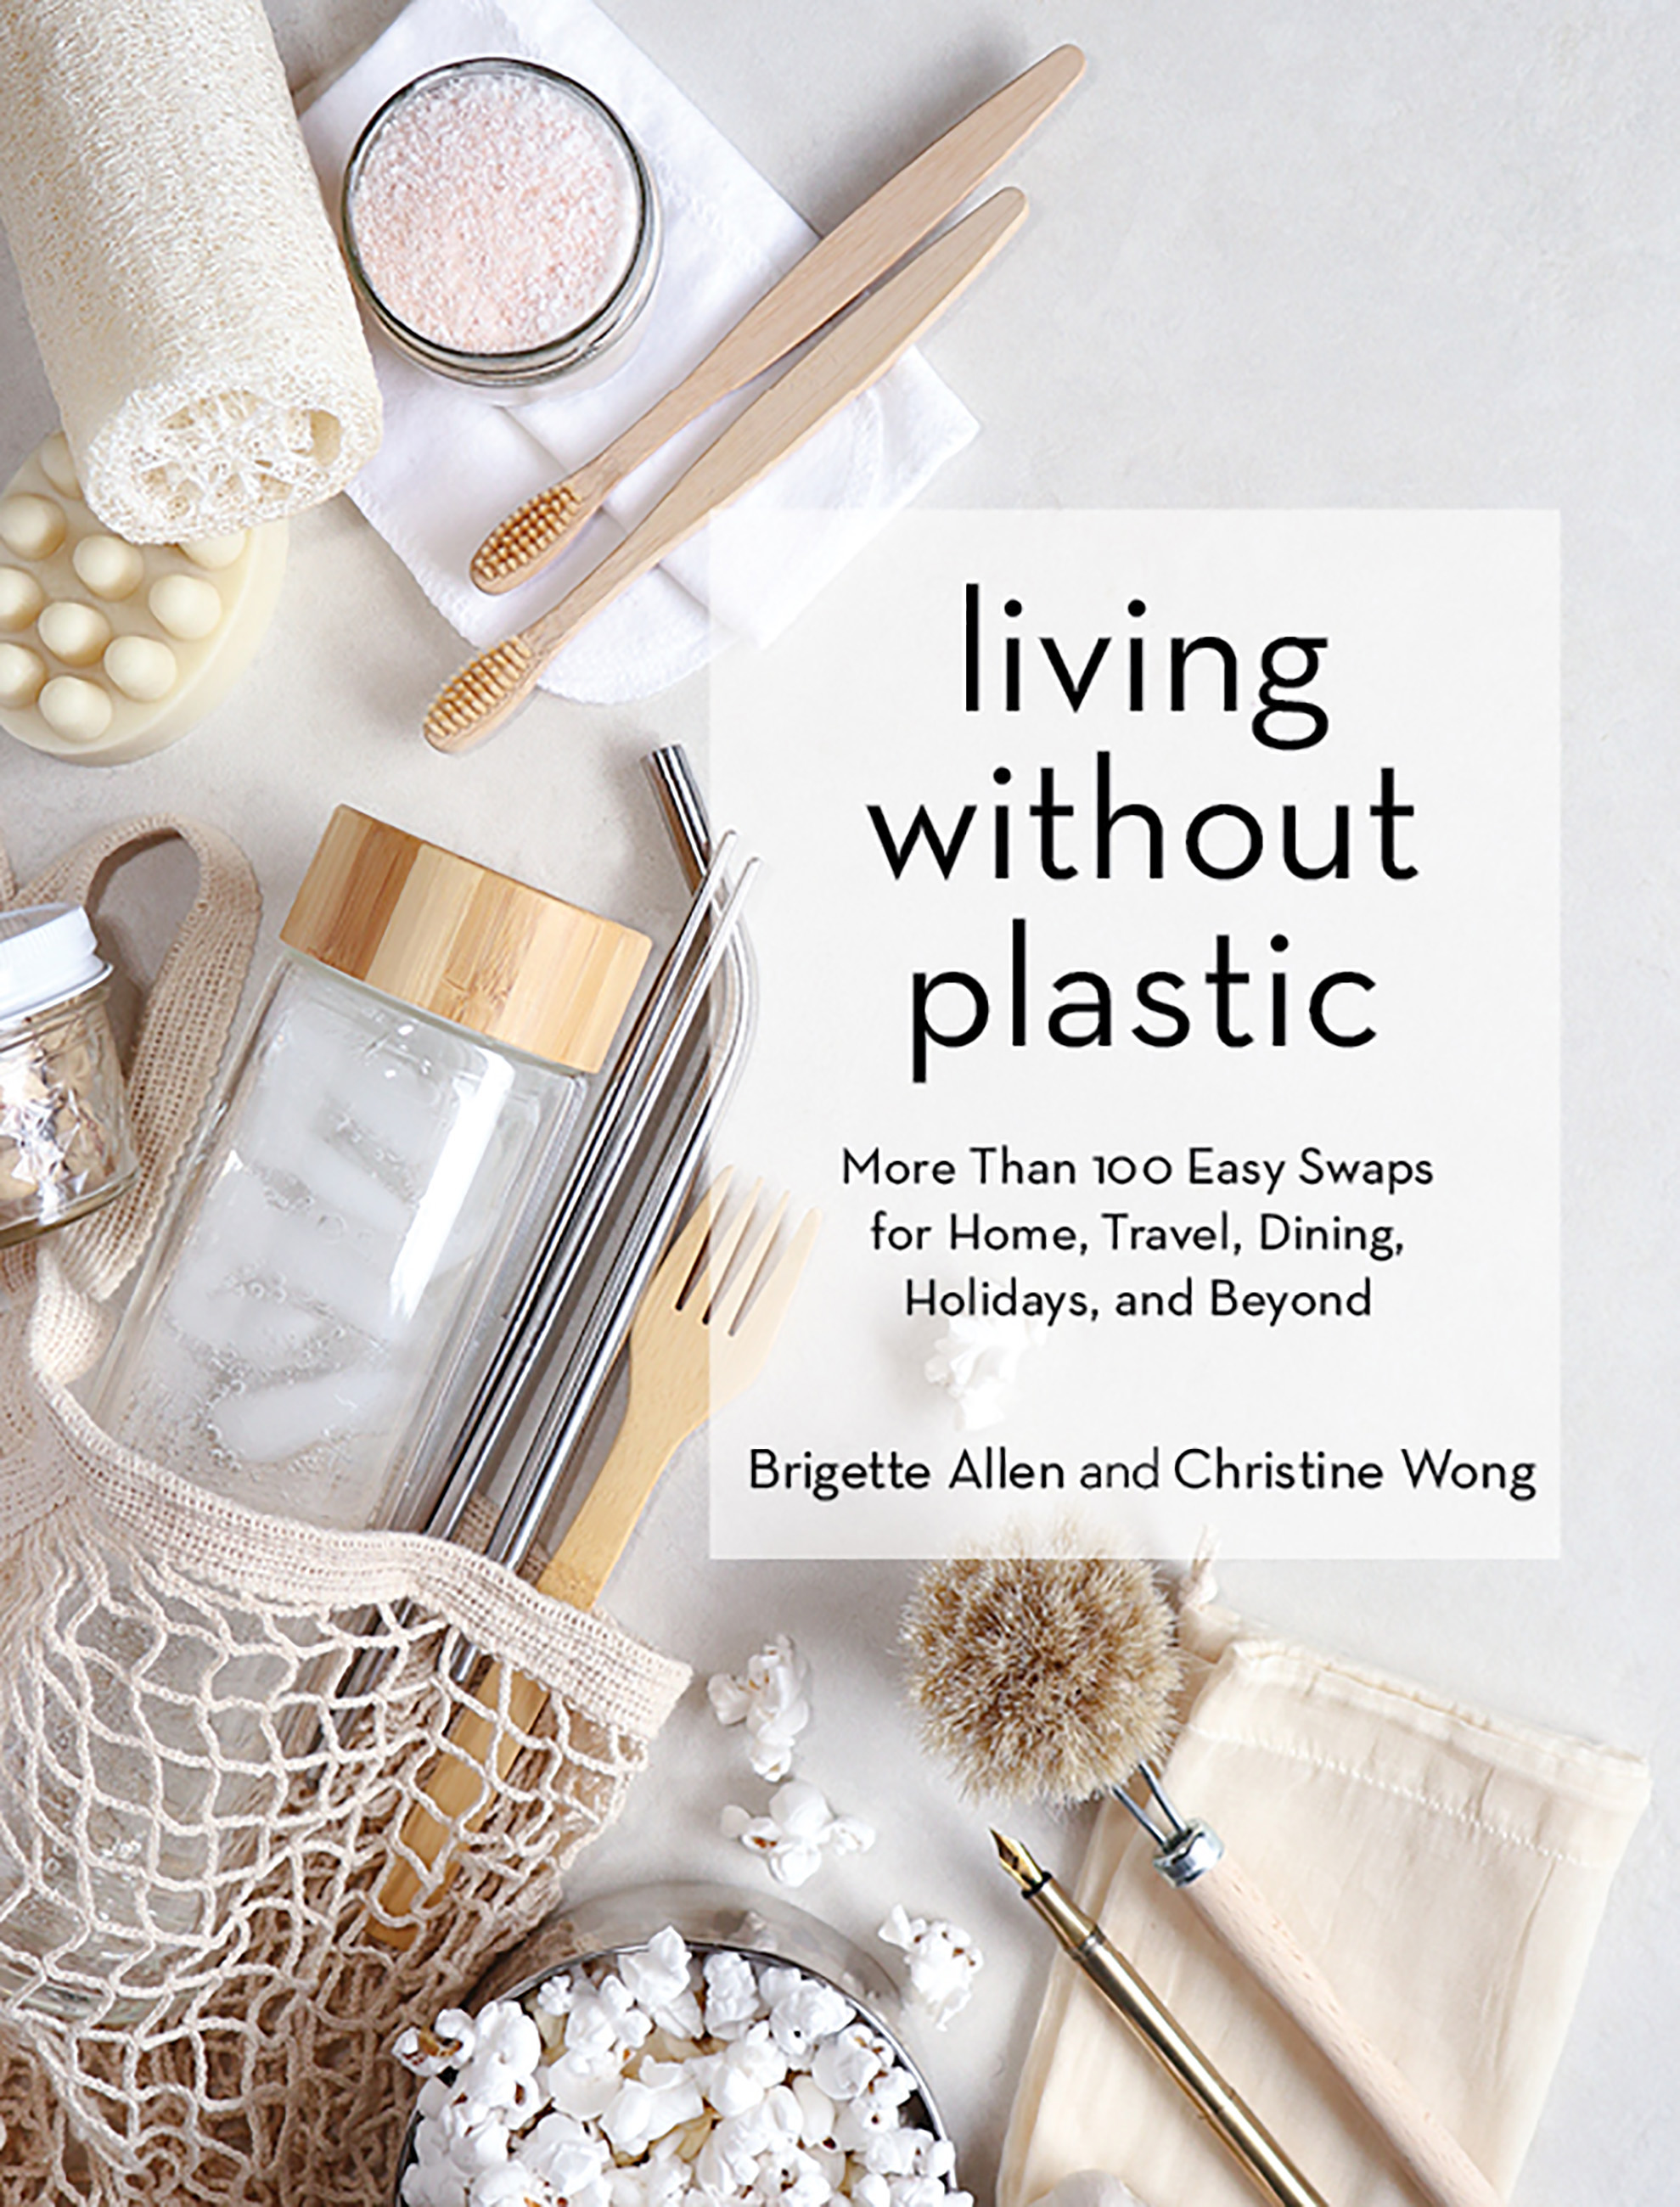 Living Without Plastic More Than 100 Easy Swaps for Home, Travel, Dining, Holidays, and Beyond